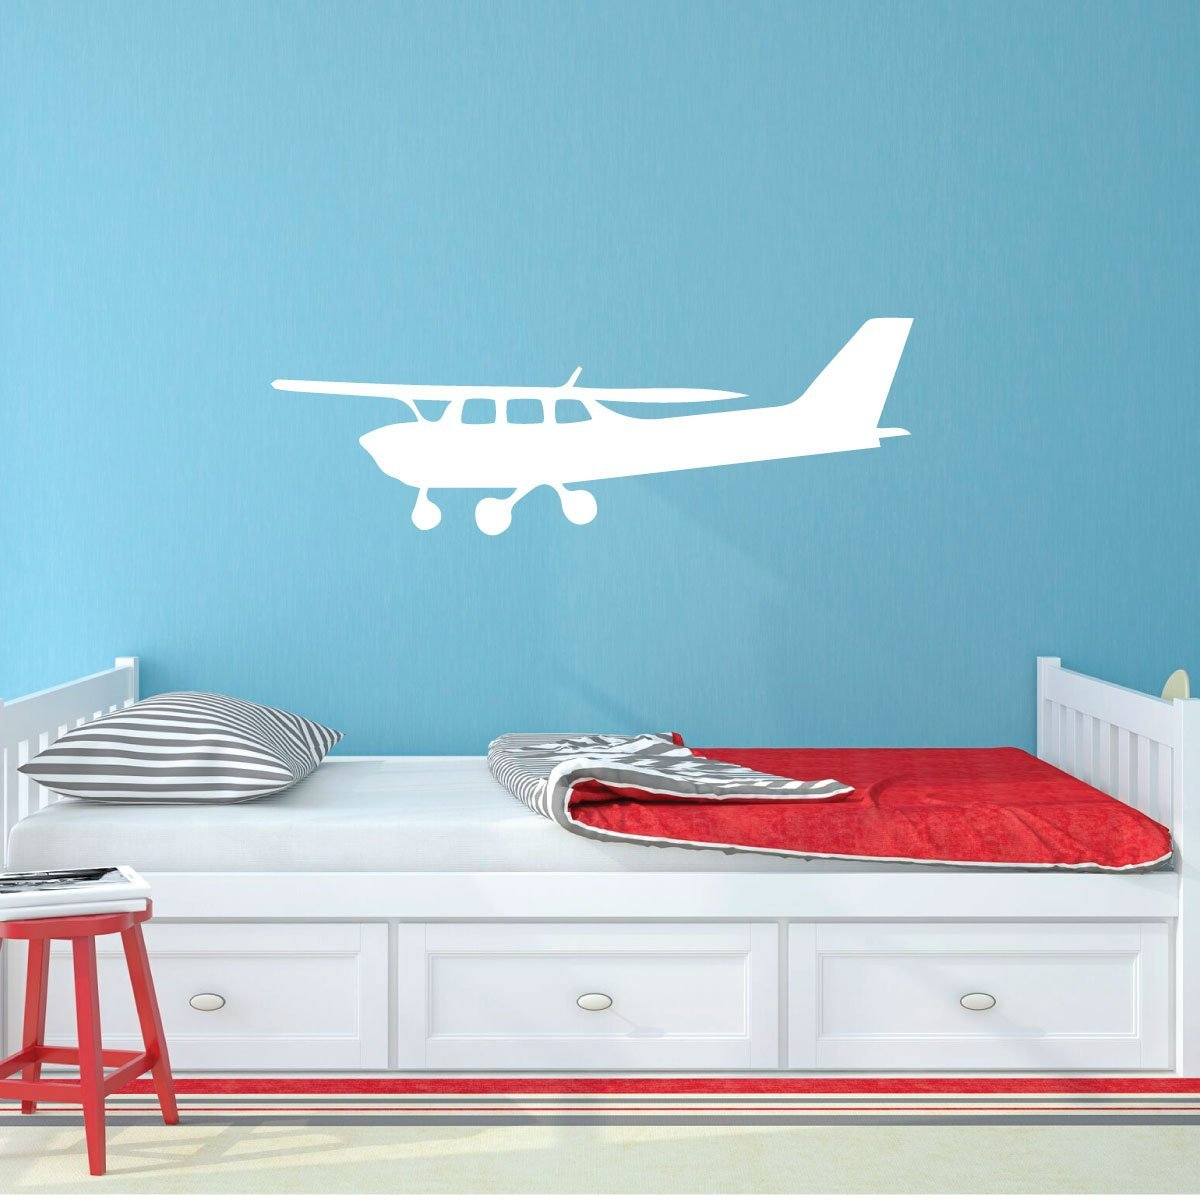 Personalized Cessna 206 Airplane Silhouette Car Decal Sticker Design